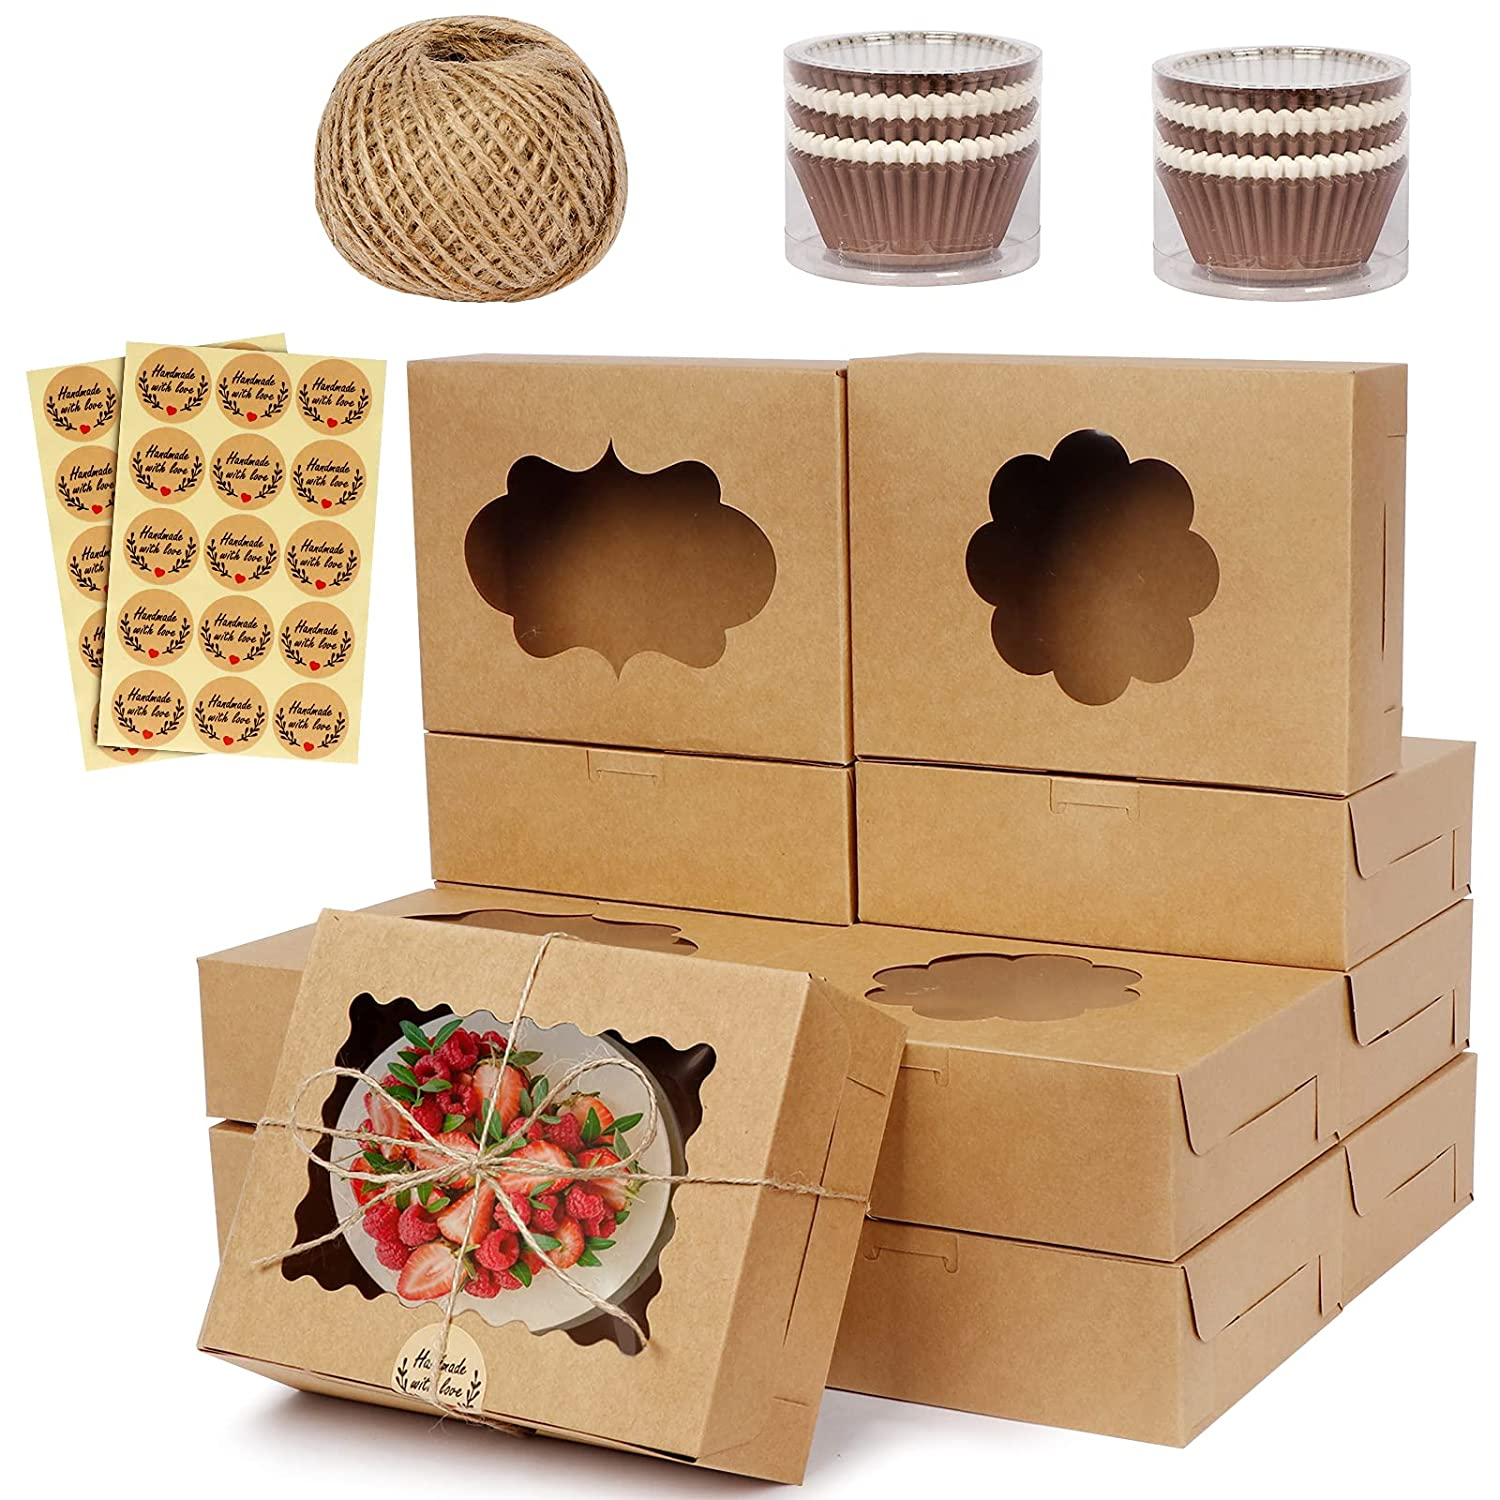 OurWarm 30Pcs Cookie Boxes with Window, 8x6x2.5 Bakery Boxes Pastry Boxes, Kraft Paper Treat Boxes for Strawberries, Cupcakes, Donuts, Includes 200Pcs Cupcake Liners, 30Pcs Stickers and Ribbons